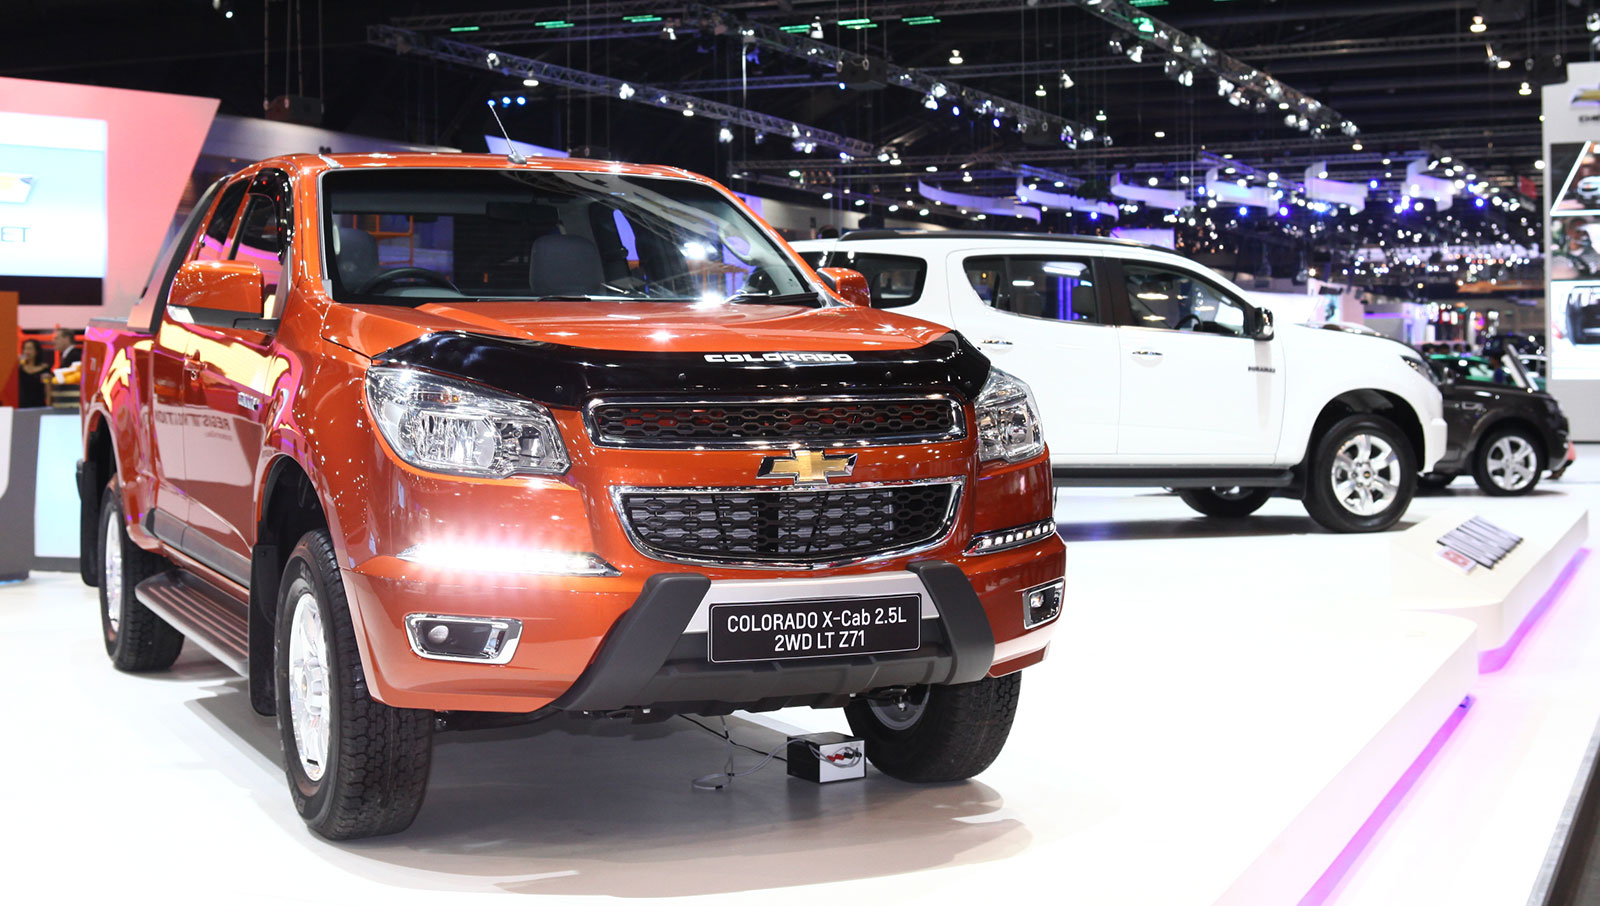 2014 chevrolet colorado launched in thailand new duramax 2 engine. Cars Review. Best American Auto & Cars Review